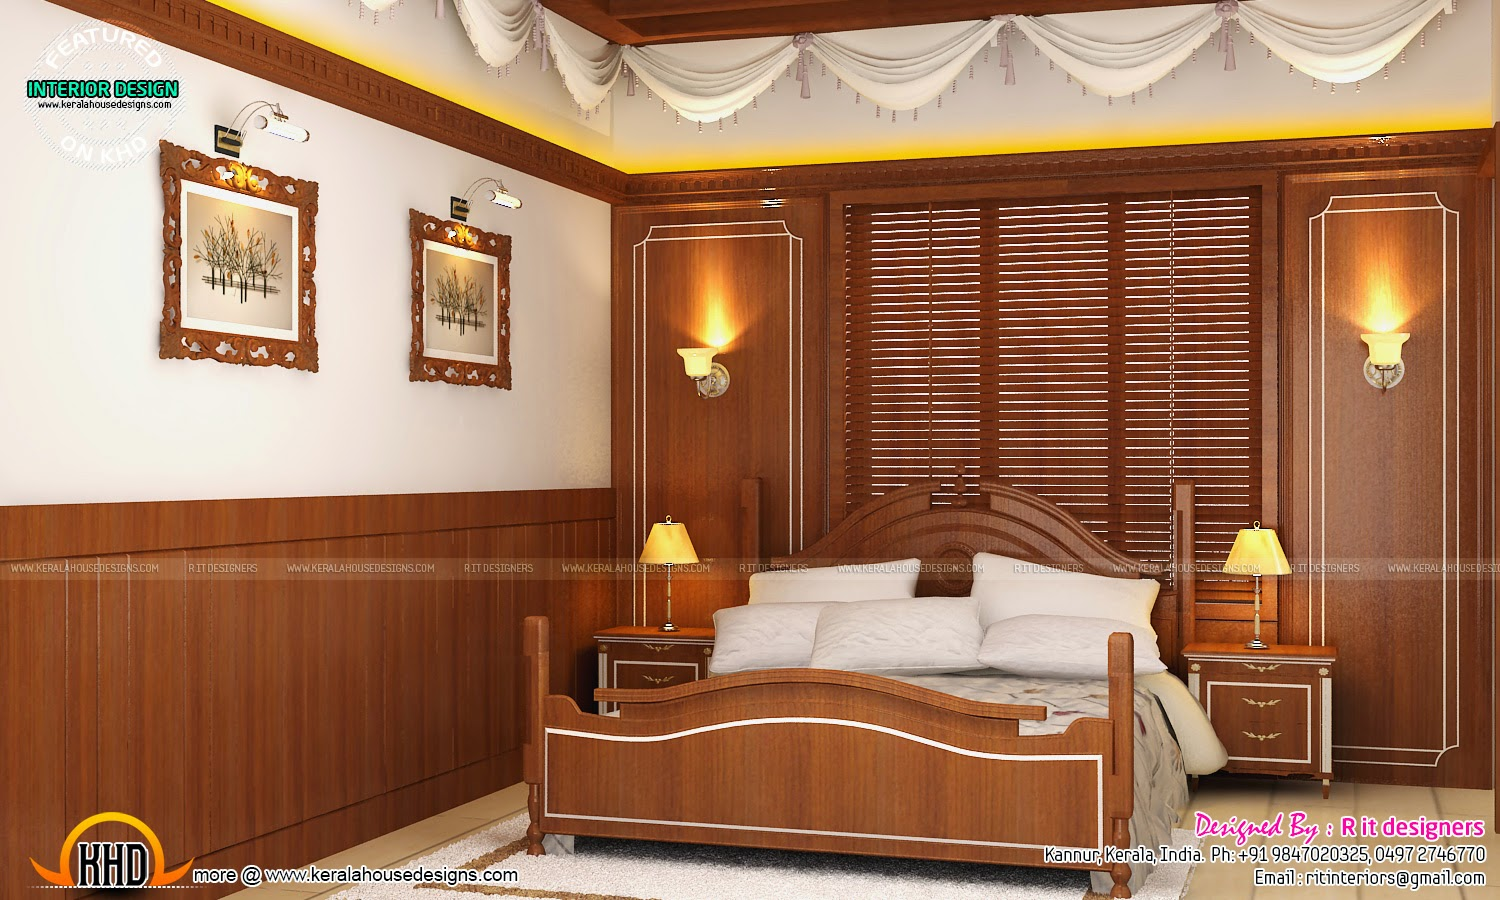 Flat roof house tamilnadu keralahousedesigns for Home bedroom design photos